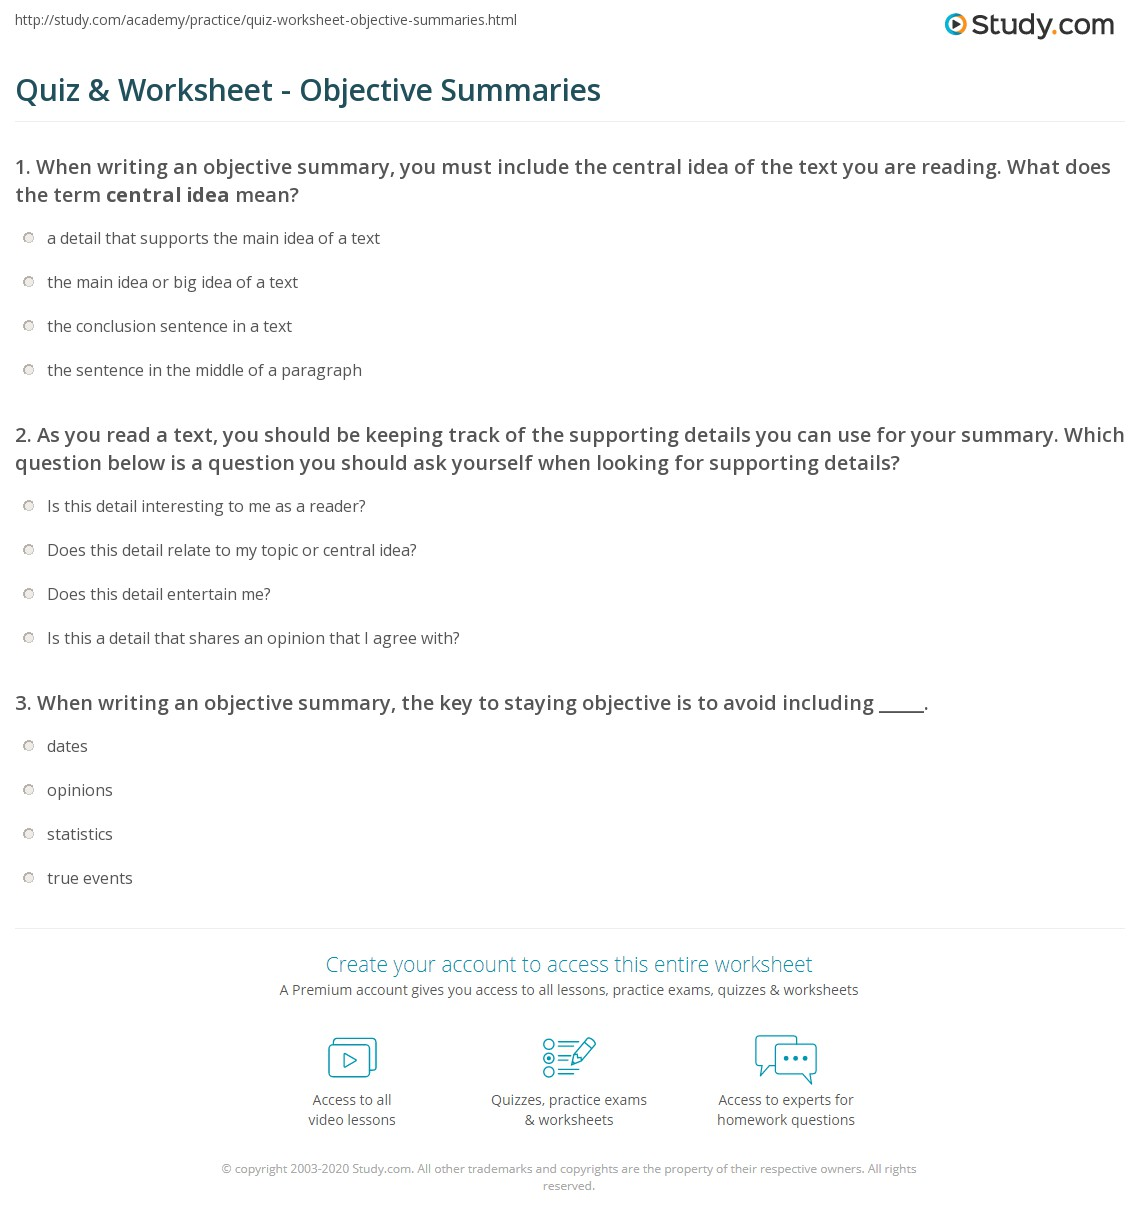 quiz worksheet objective summaries study com as you a text you should be keeping track of the supporting details you can use for your summary which question below is a question you should ask